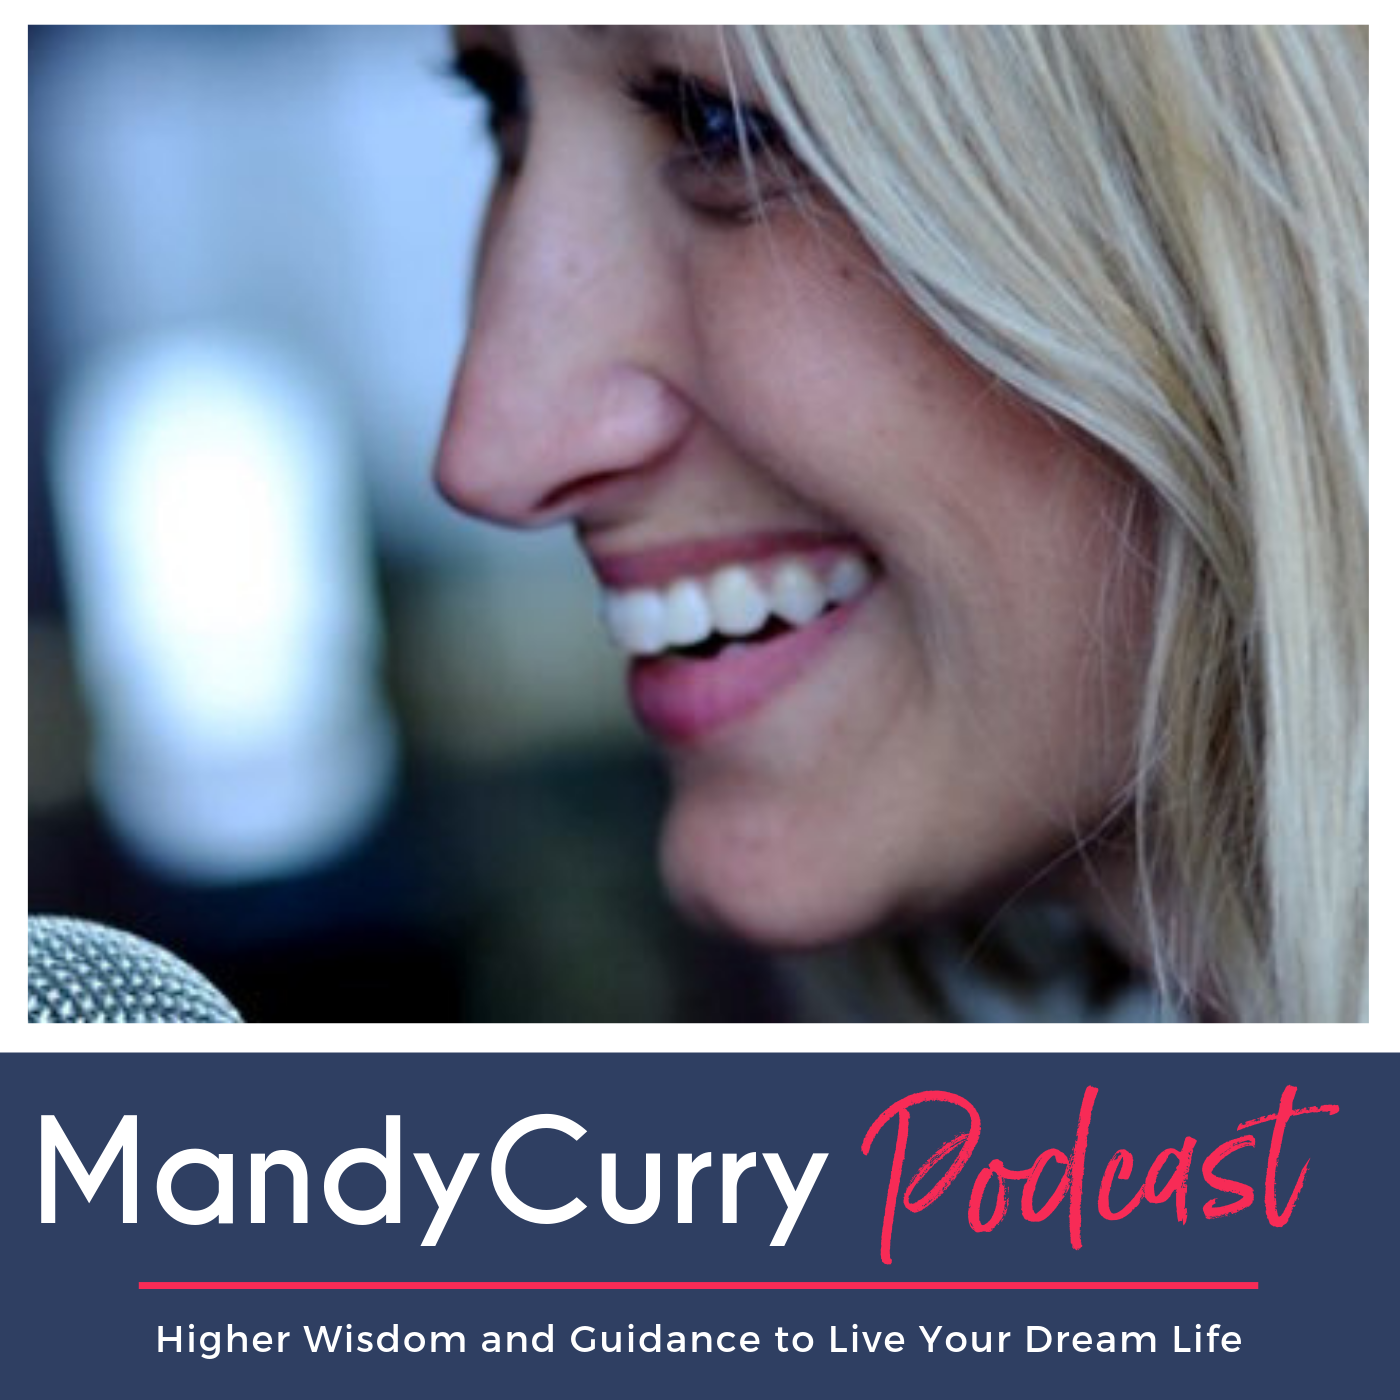 Mandy Curry Podcast show image